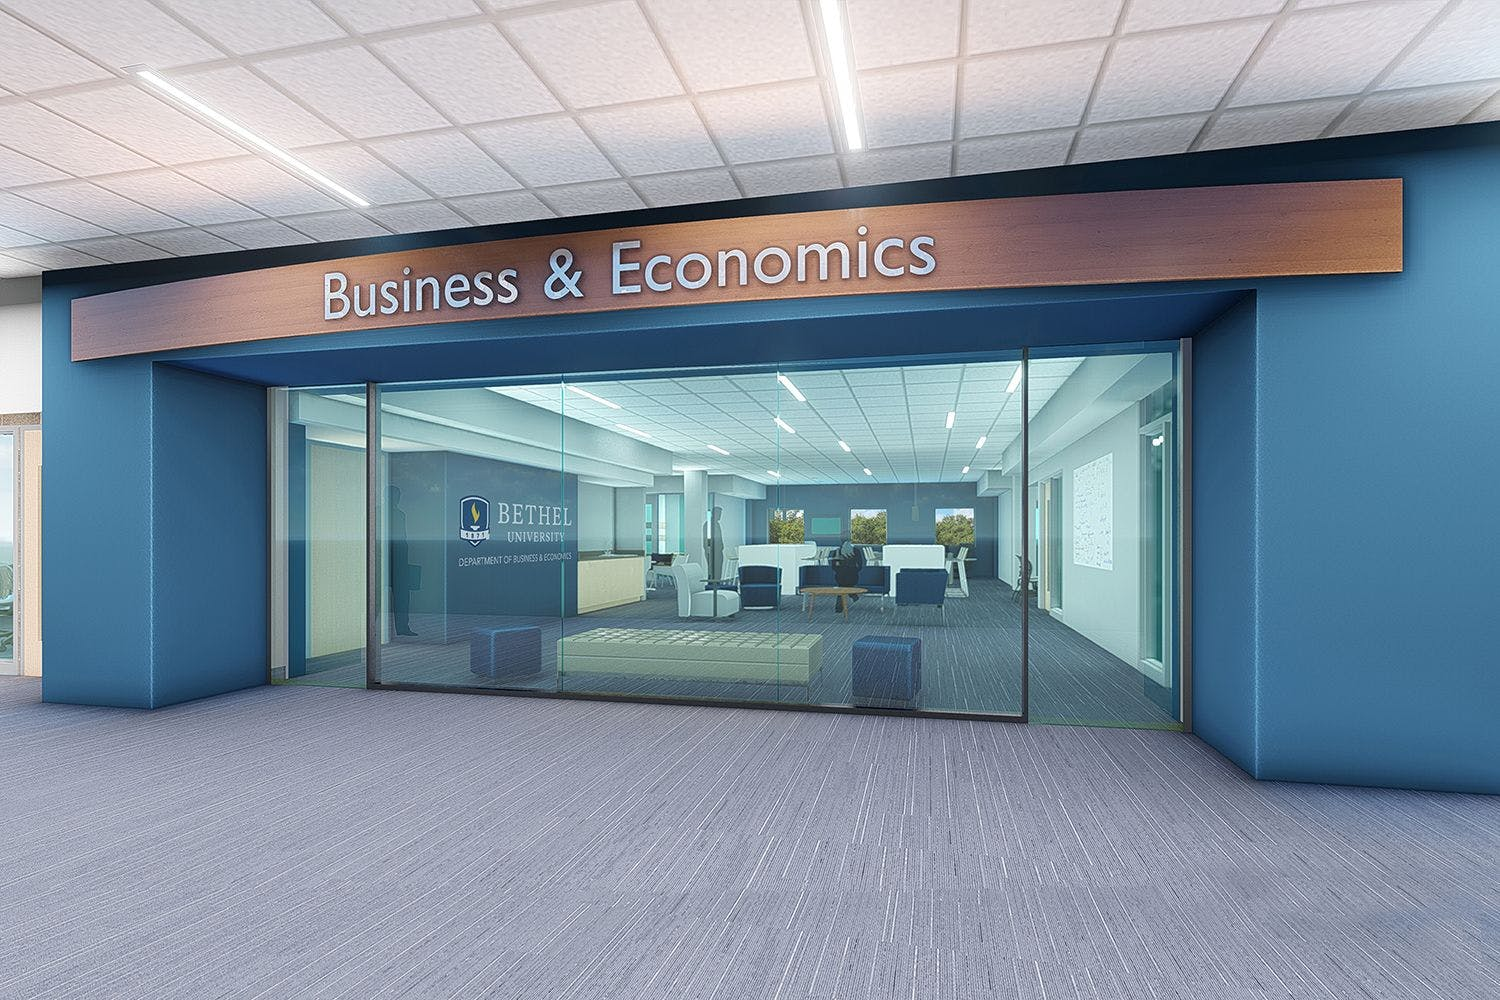 $4 Million Renovations Make Way for New Department of Business and Economics Space